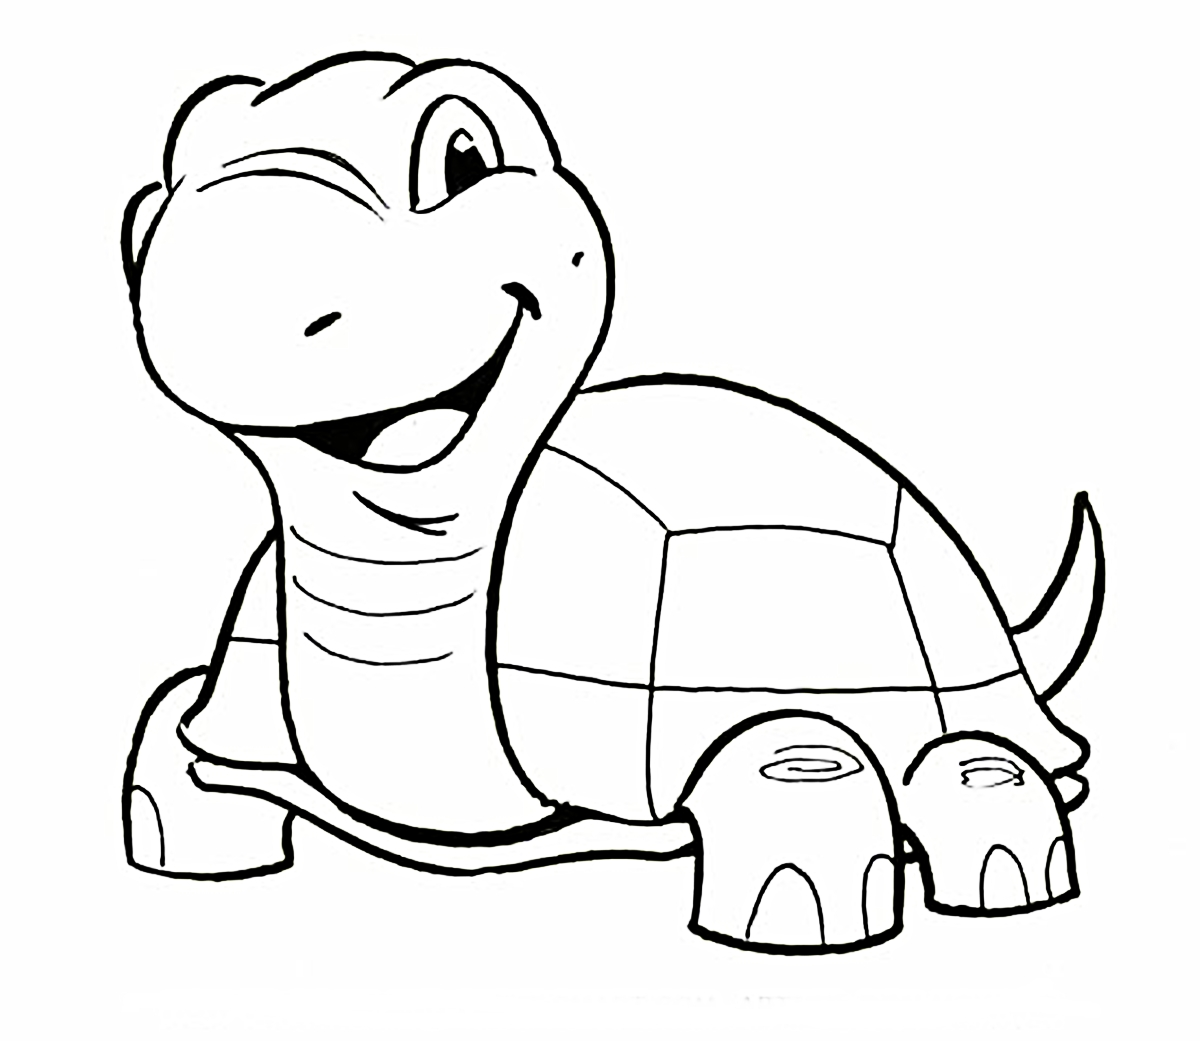 It's just a graphic of Smart Turtle Cartoon Drawing